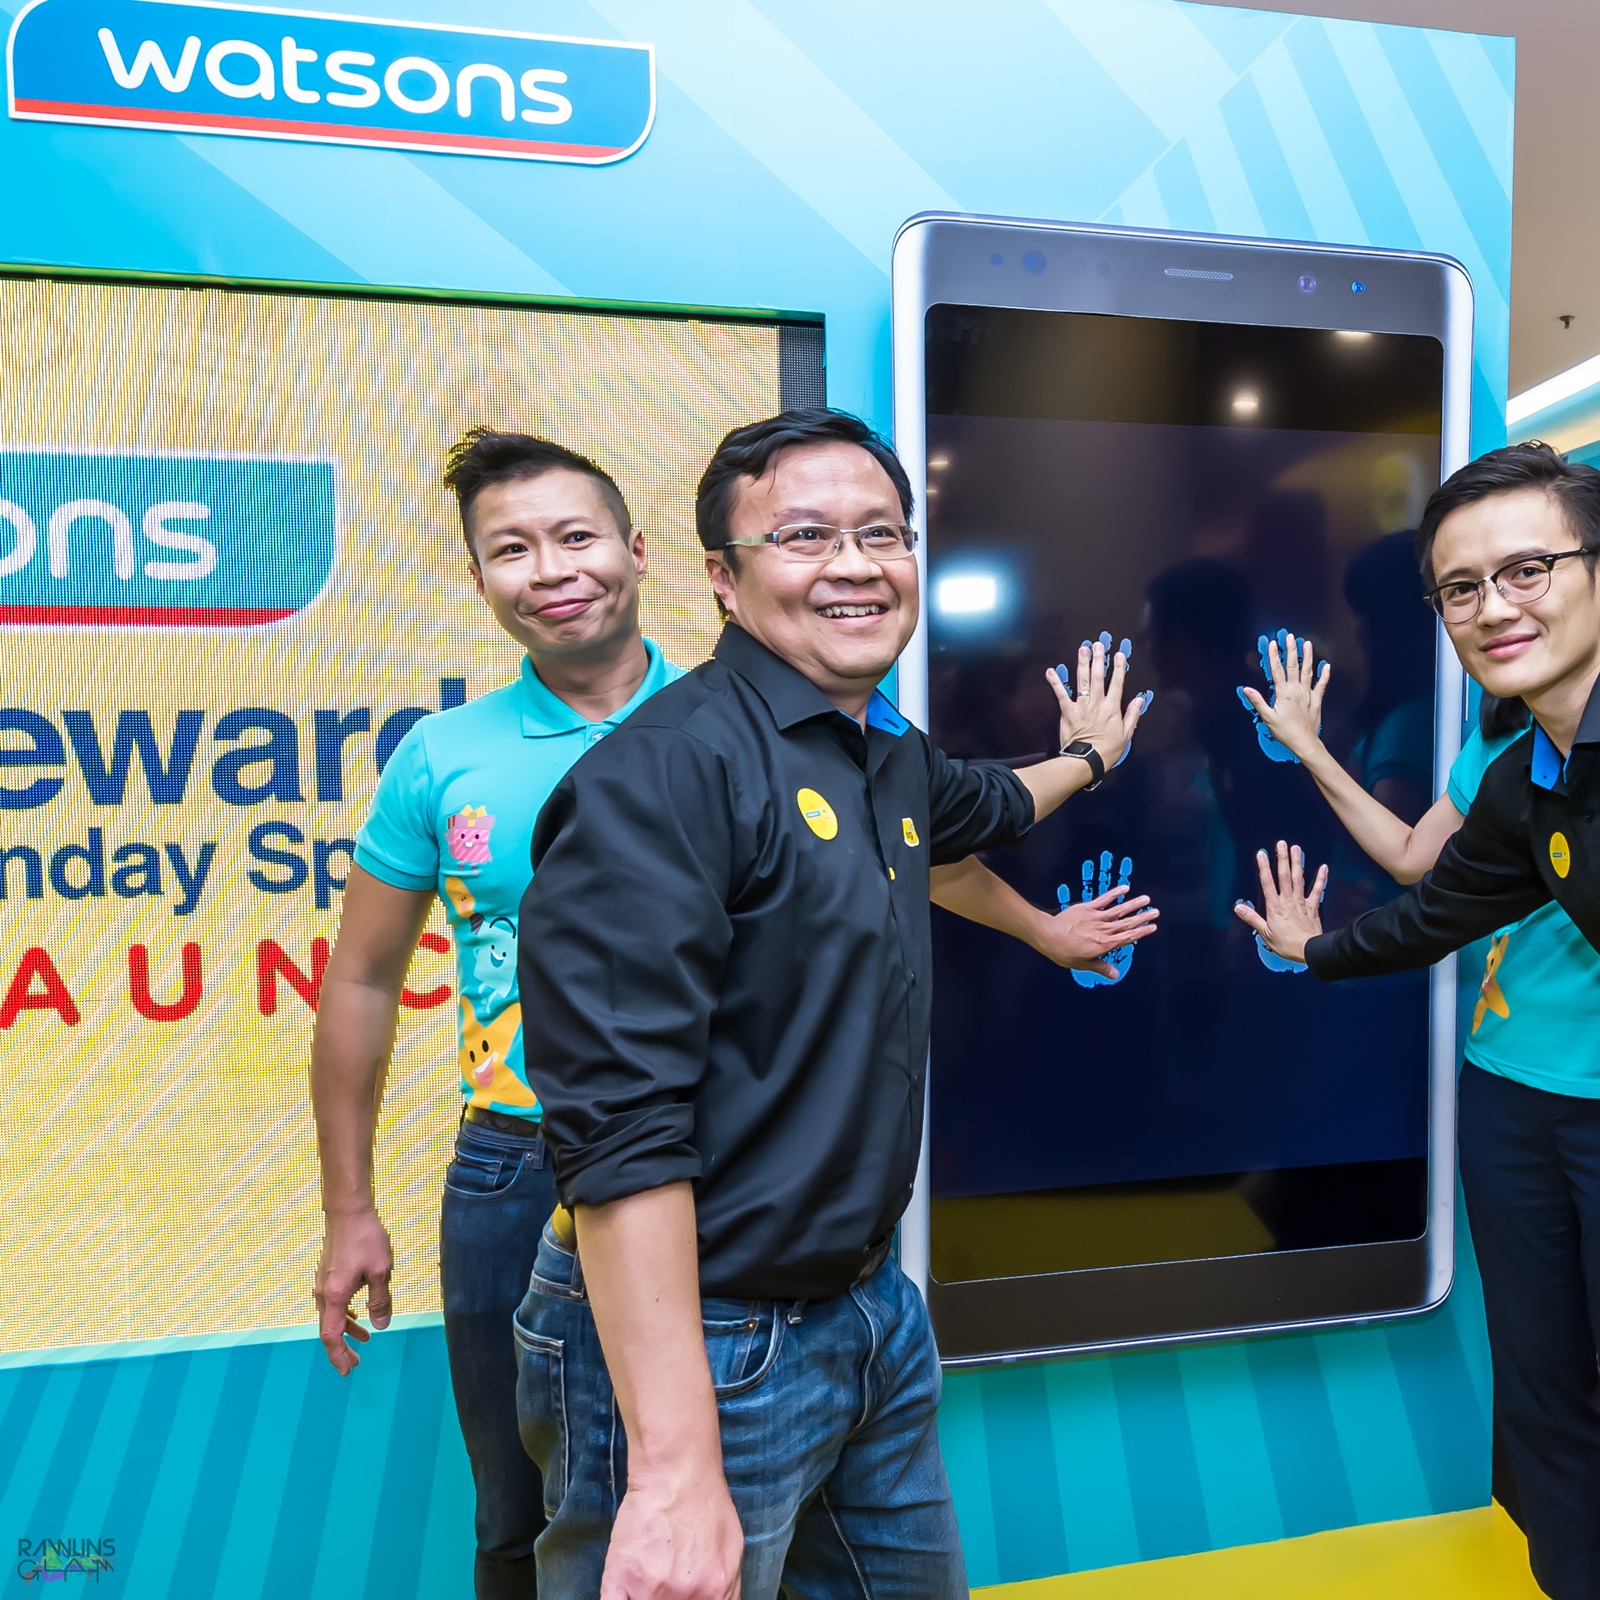 Watsons Monday Superdeals, MyDigi, Watsons Malaysia, Rawlins GLAM, Technology, Online Shopping, MyDigi Rewards